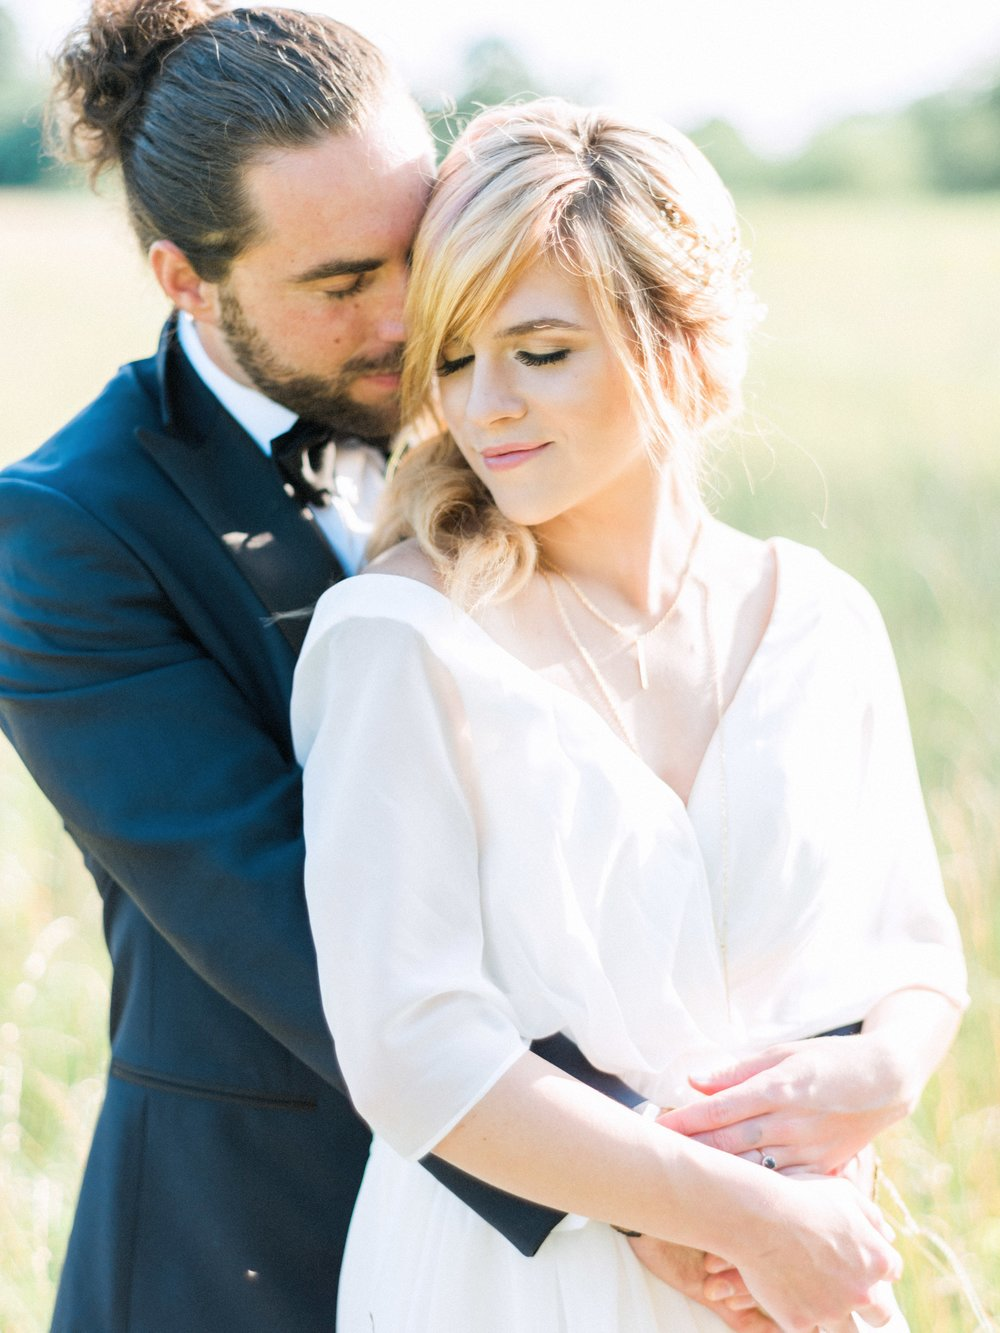 Asheville, NC mountainside wedding inspiration